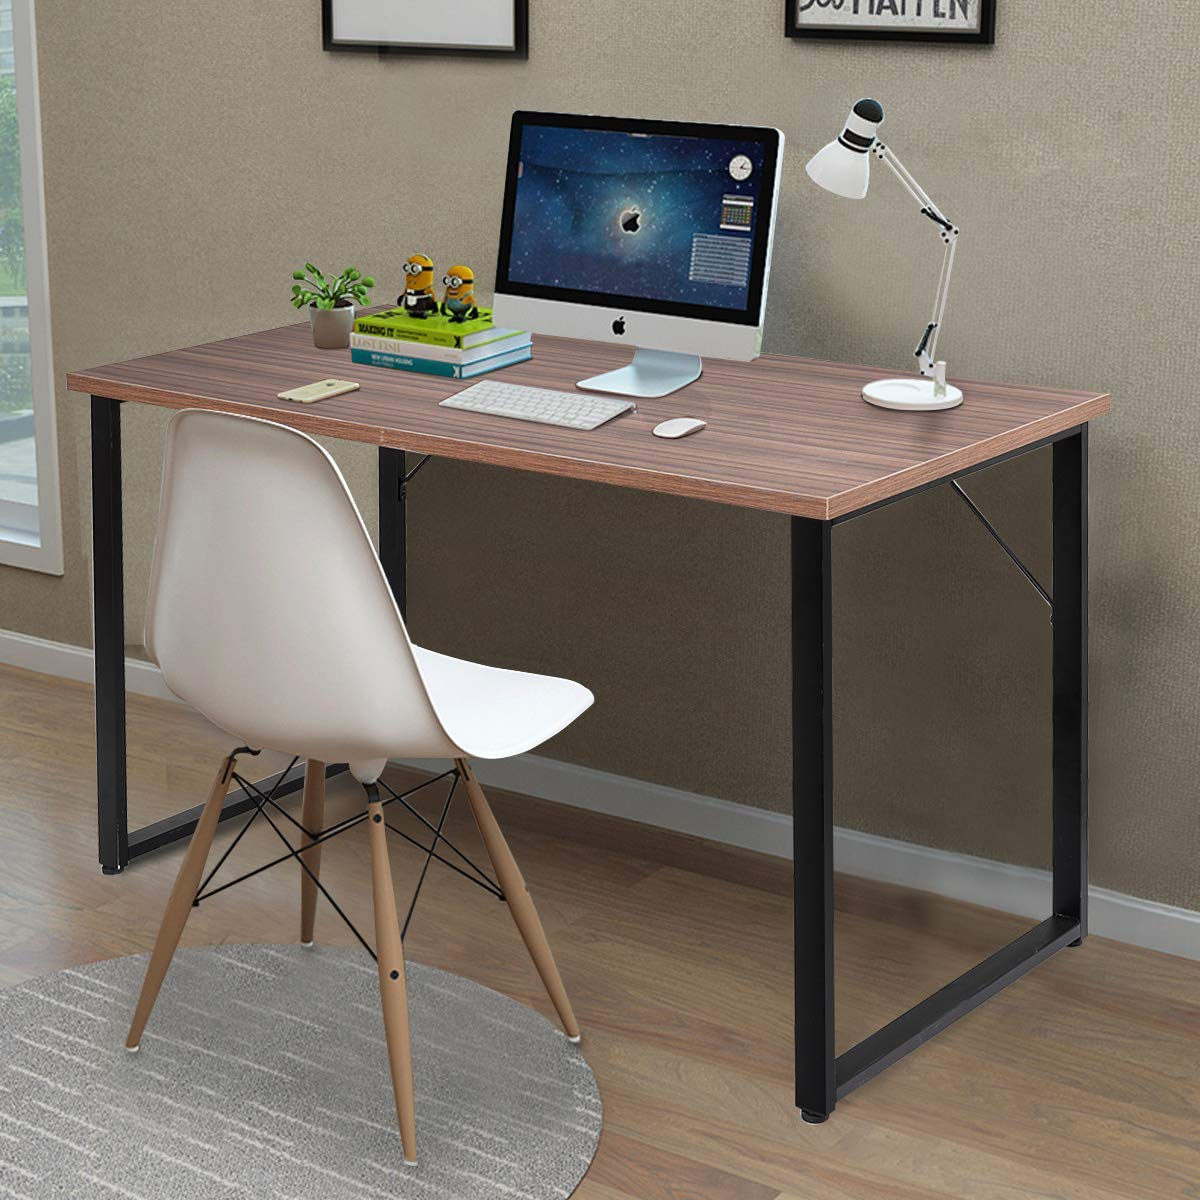 Tangkula writing table computer desk writing desk simple modern wood pc laptop table study table sturdy durable computer desk multi function workstation